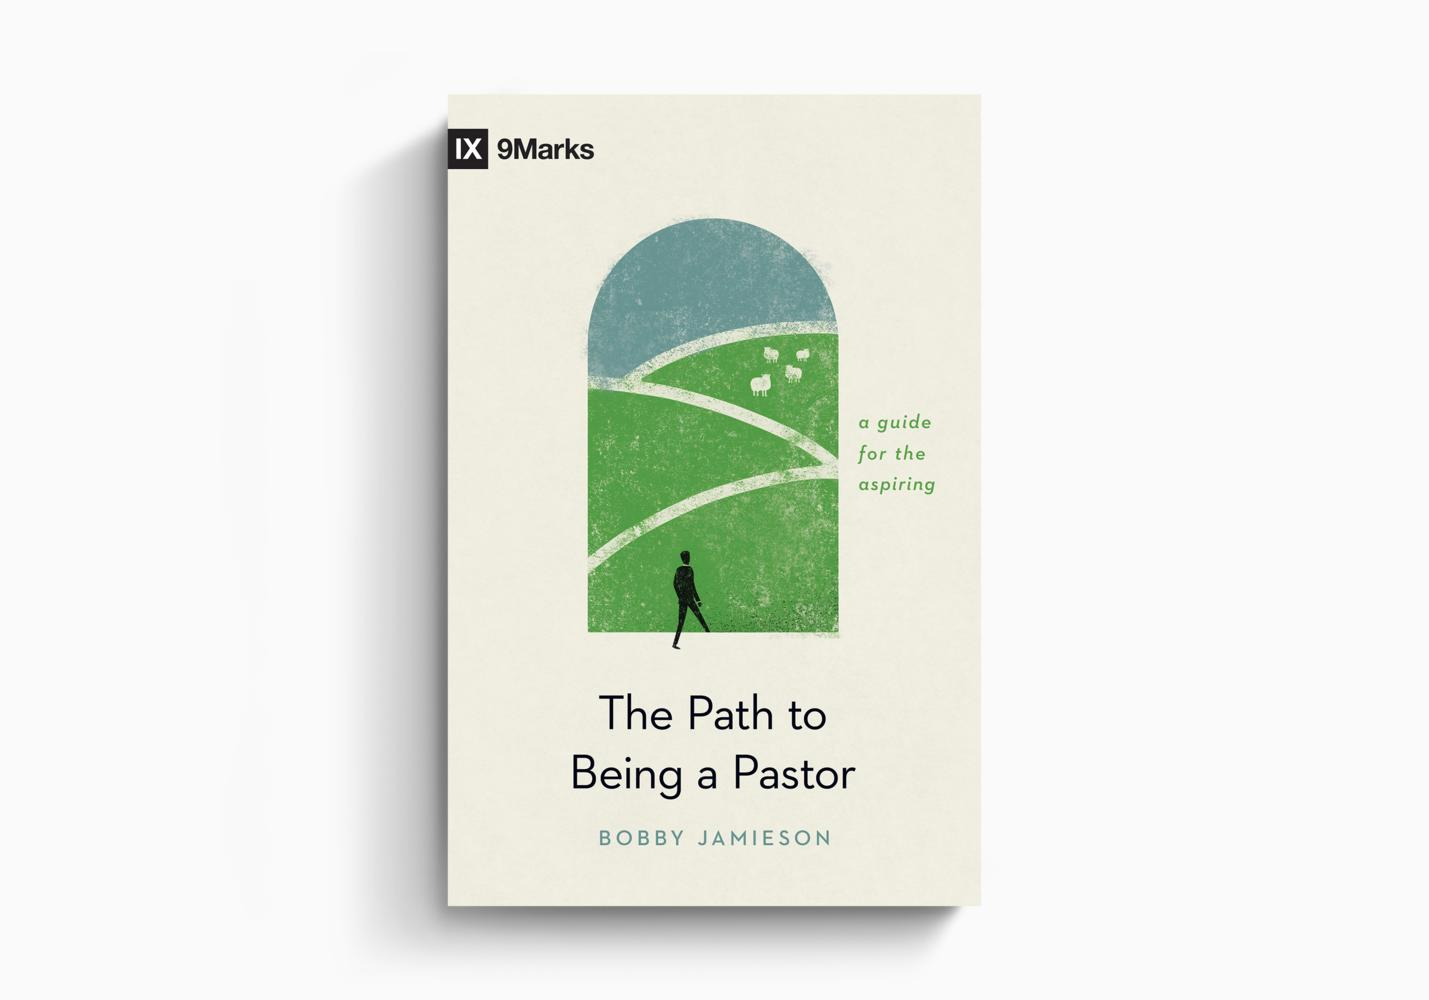 The Path to Being a Pastor